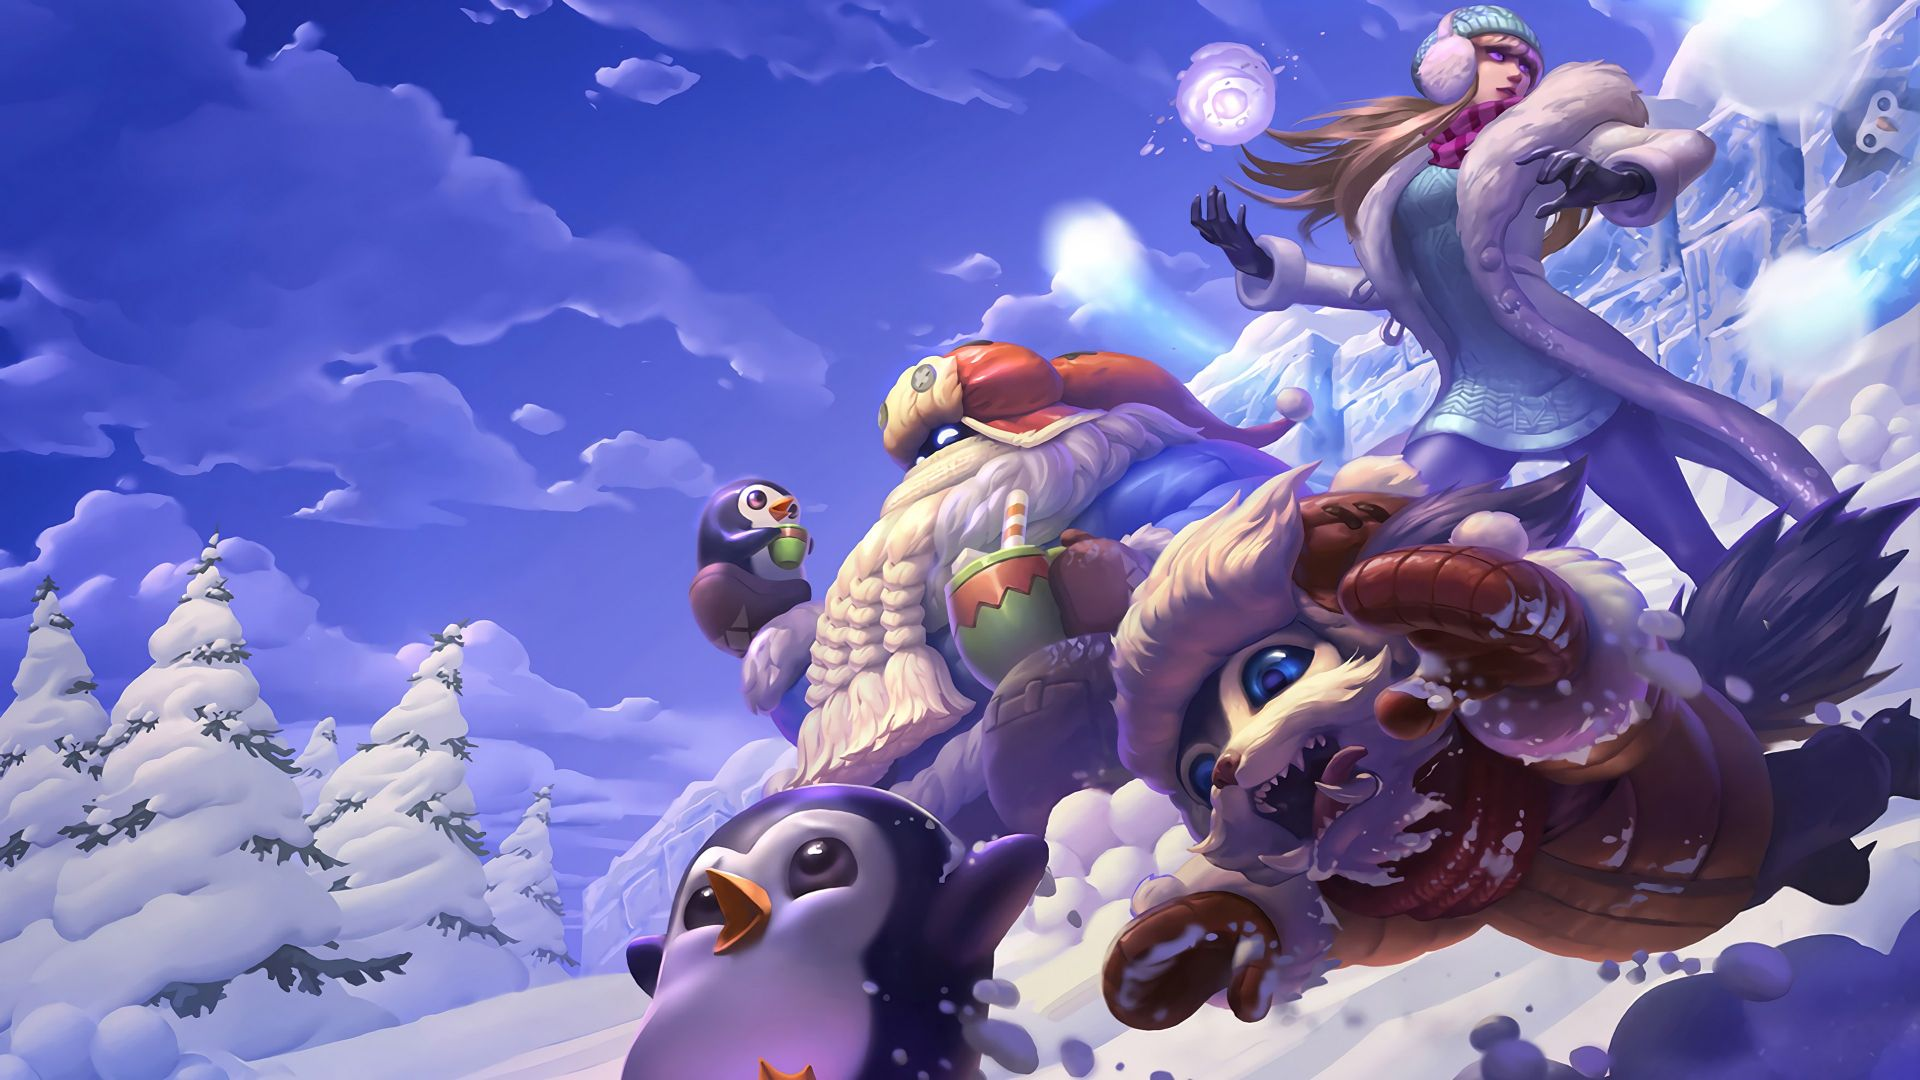 snow day, syndra bard, gnar splash, League of Legends, game, lol, MOBA (horizontal)